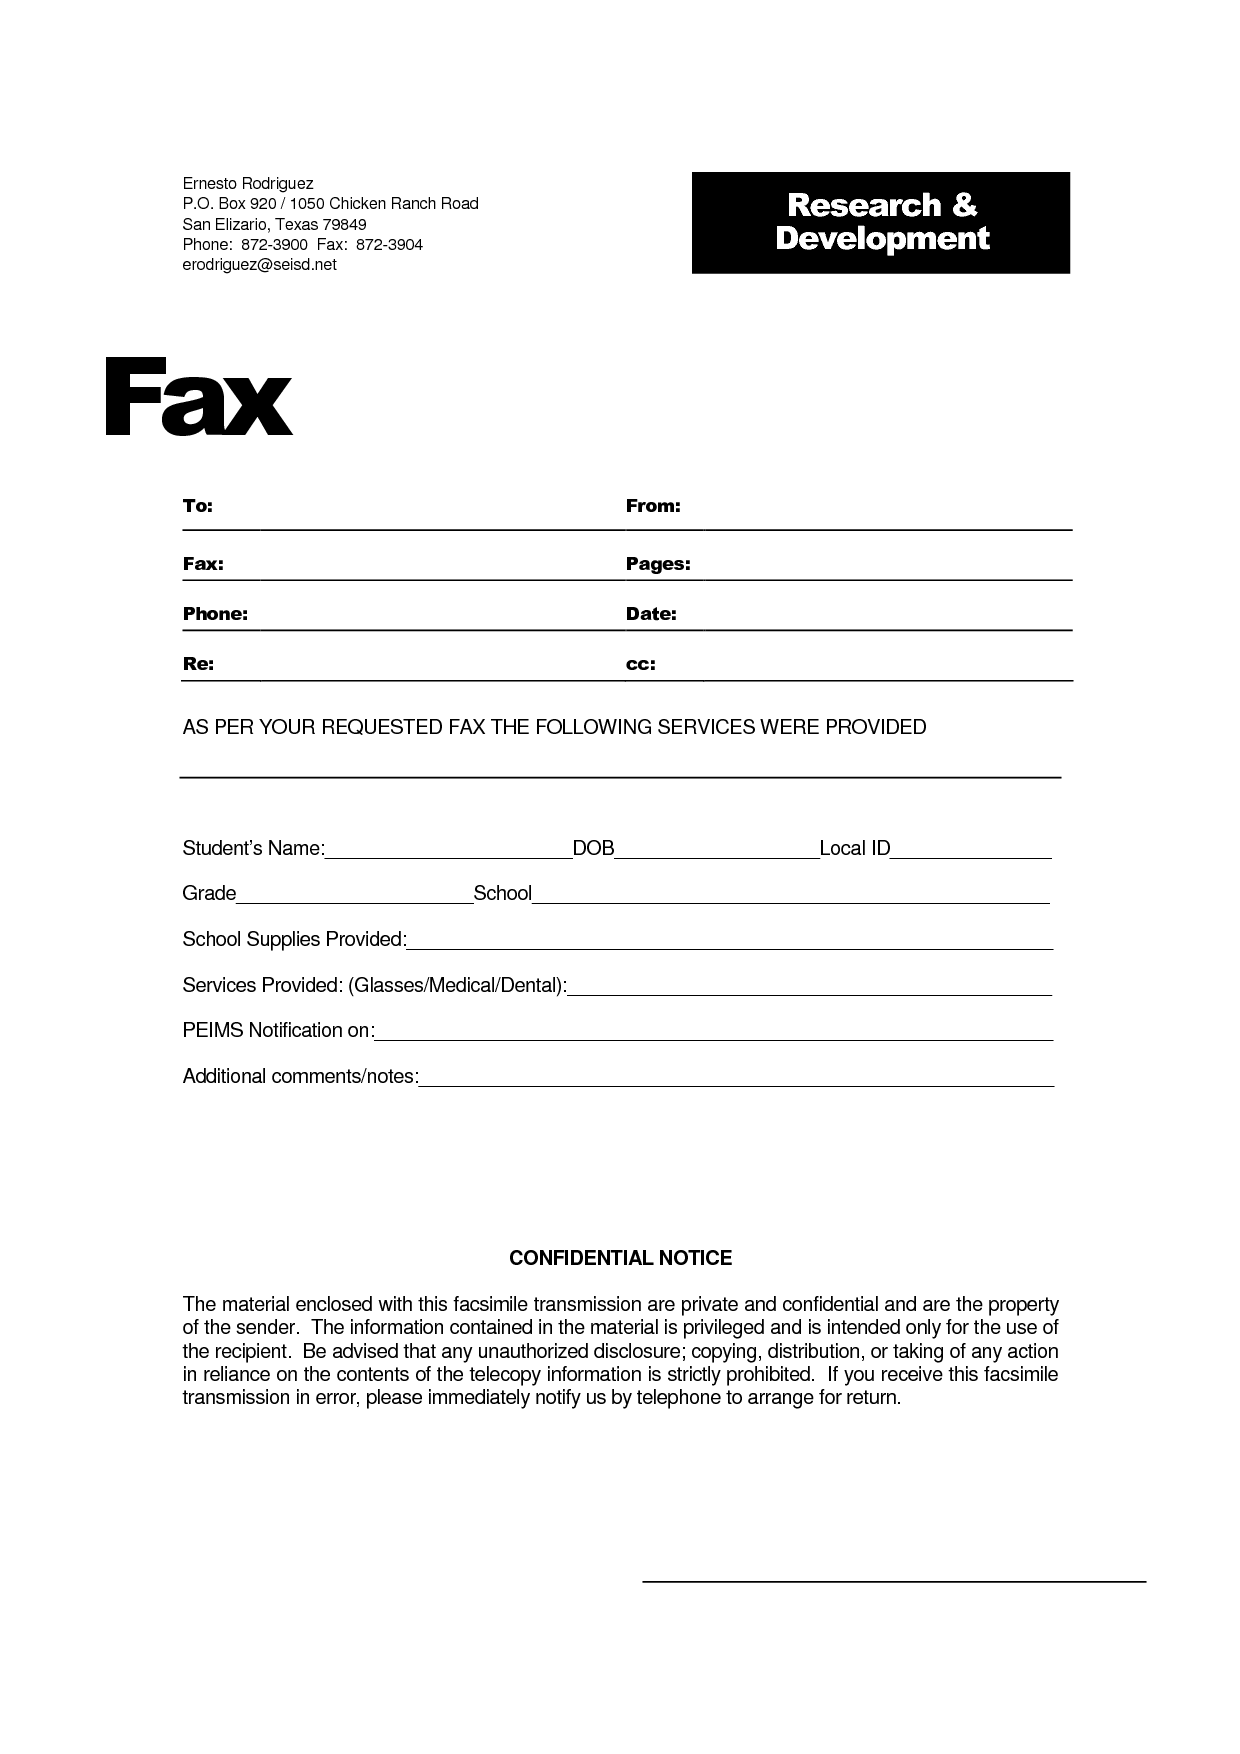 Confidential Fax Cover Sheet Private Fax Cover Sheet Pdf Download